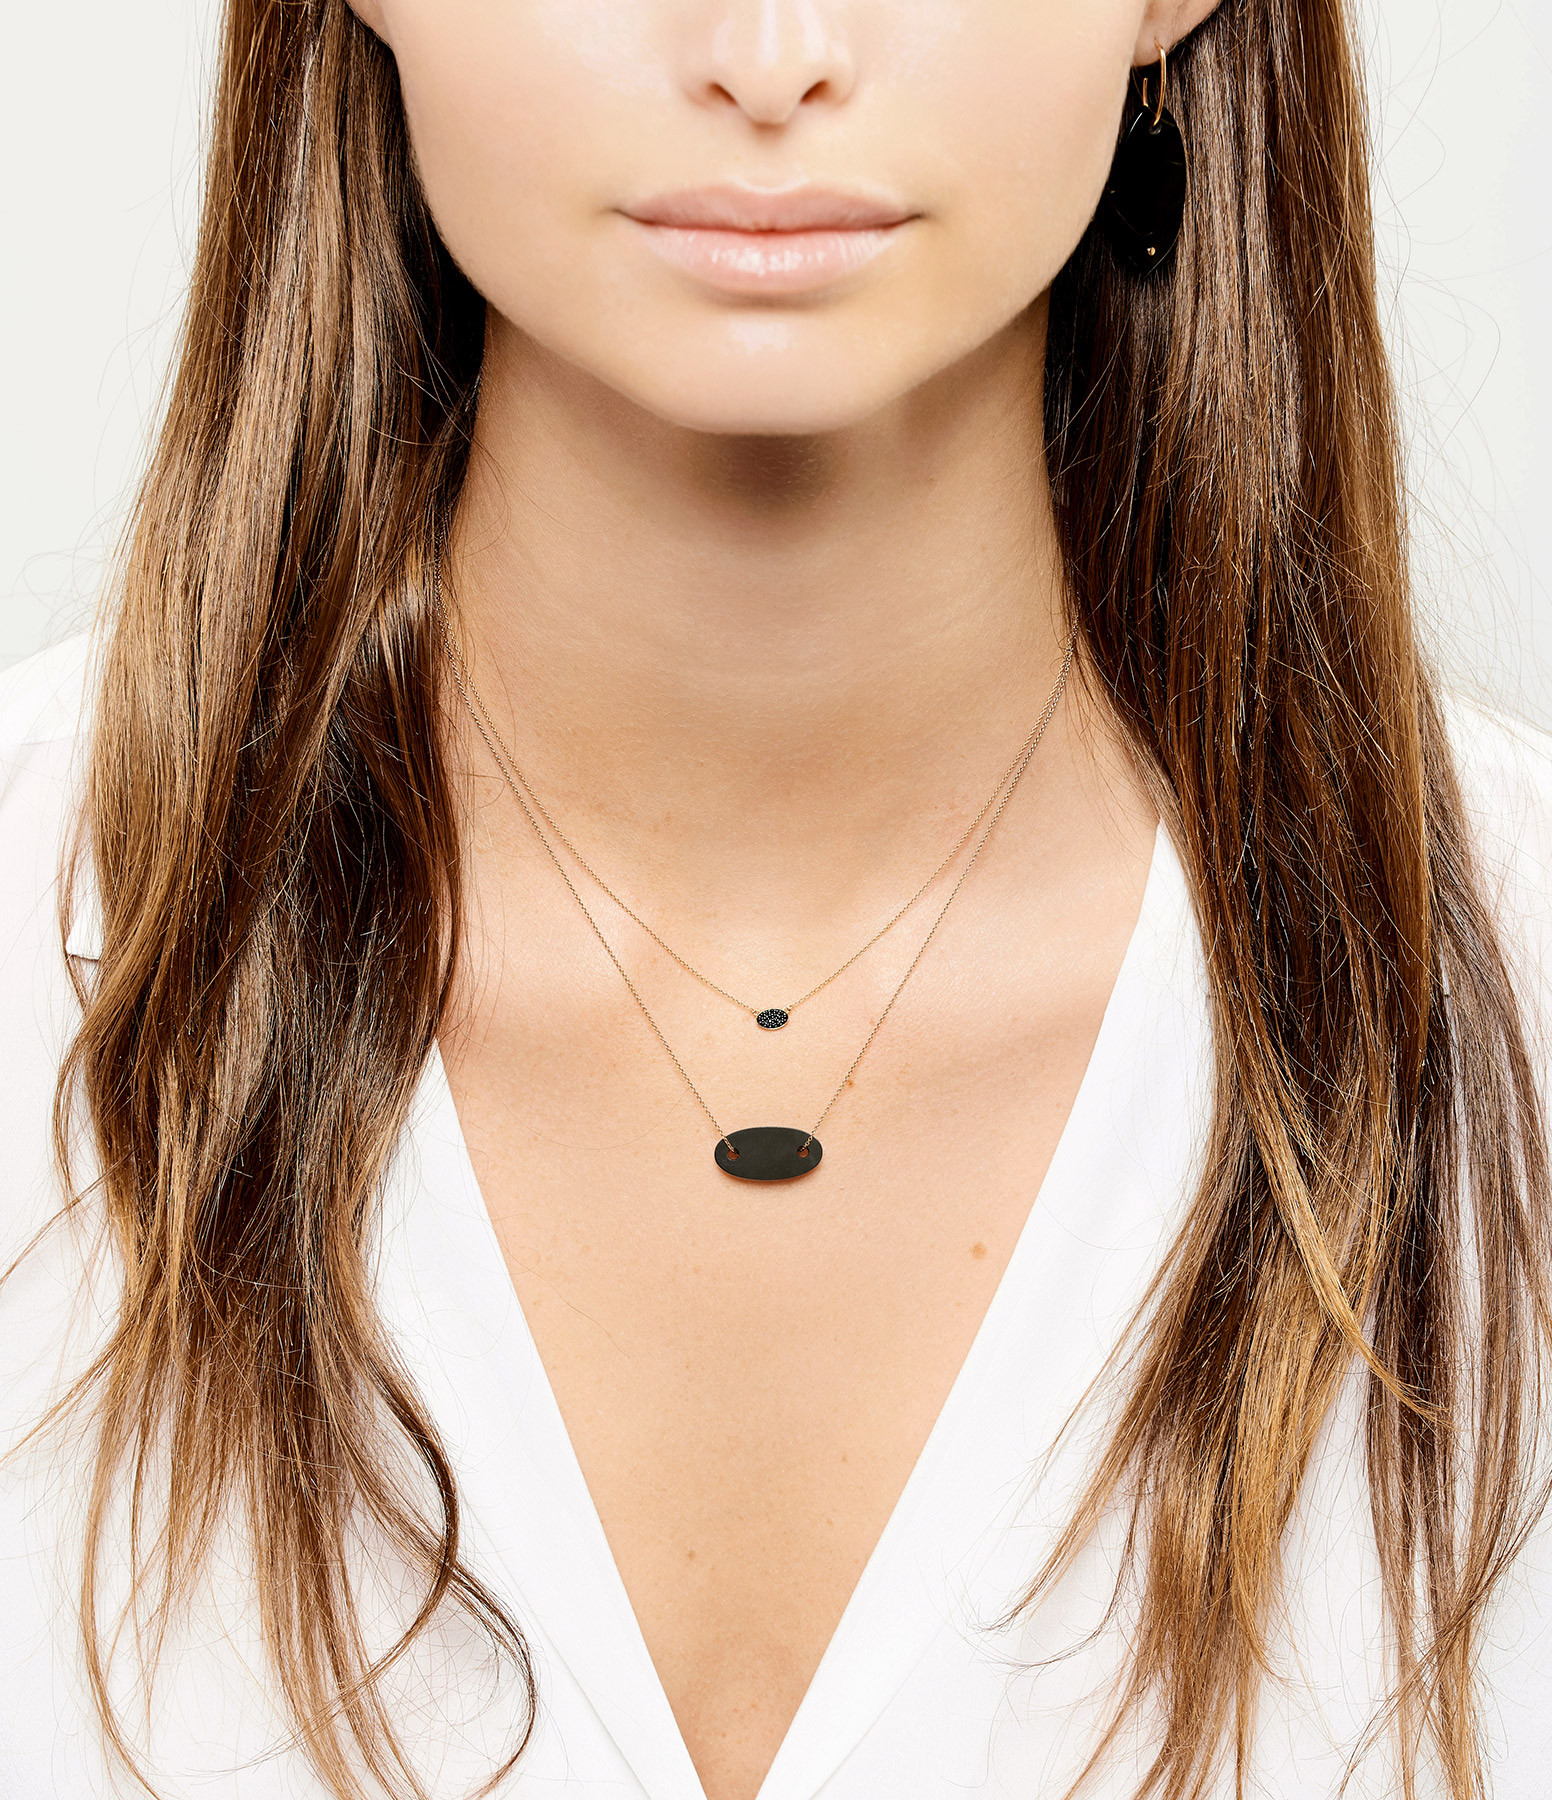 GINETTE_NY - Boucles d'oreilles Ellipses Or Rose Onyx